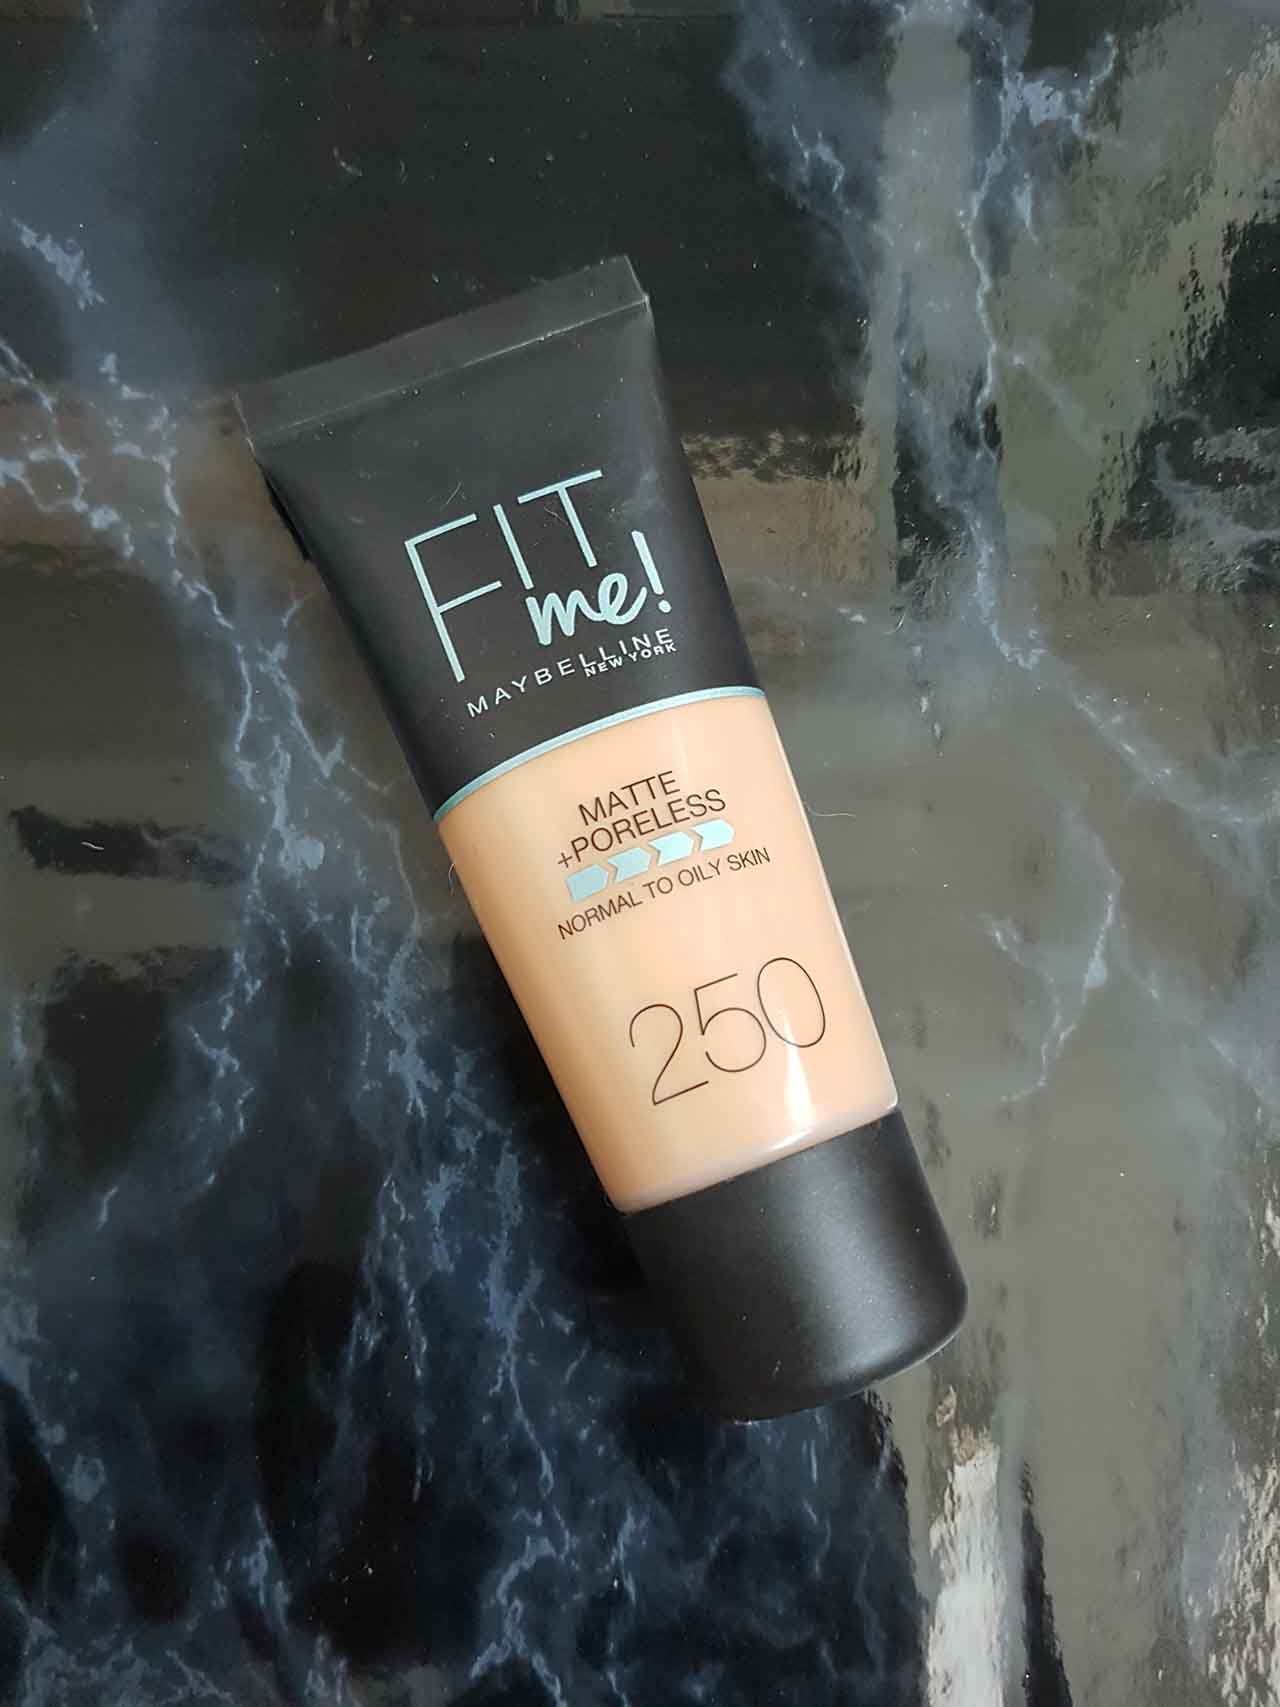 Summer's Gone But Not Forgotten - My Summer Bronze Haul: Maybelline Fit Me Foundation - This foundation is much better than I was expecting it to be! I had heard lots of views on the results so I thought the only way to know for sure is to test it myself! It is designed to be a matte poreless coverage and suitable for normal to oily skin. I have used it a few times now and it always gives me a smooth and flawless look without looking caked on or unnatural. The consistency is reasonably thick, almost paste like but it glides onto the skin well and melts into it. For a high street branded foundation, it's very good and worth trying!